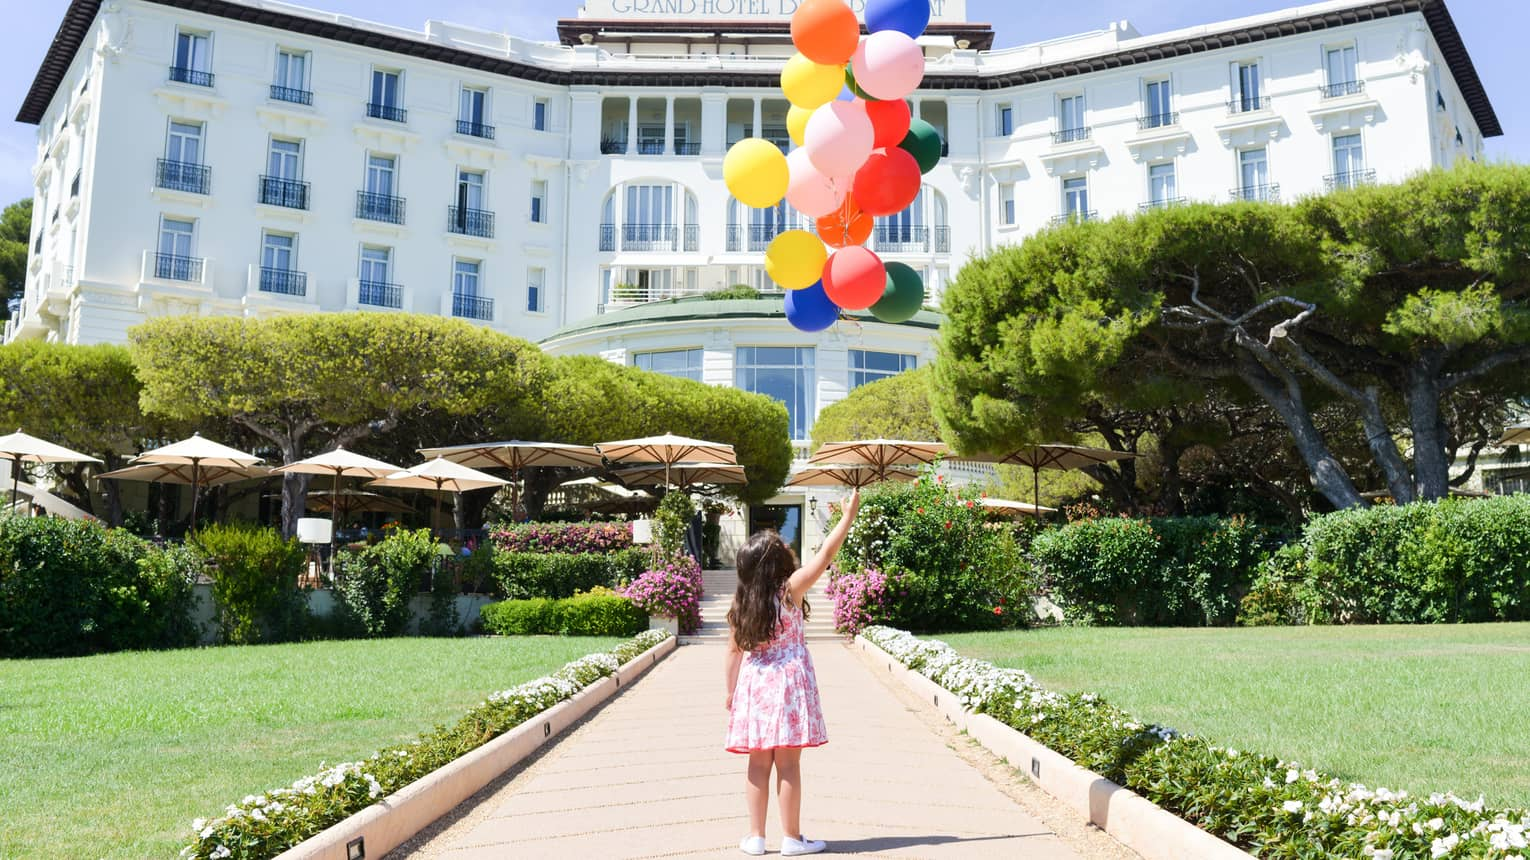 Young girl holds bunch of colourful balloons on brick path leading to hotel